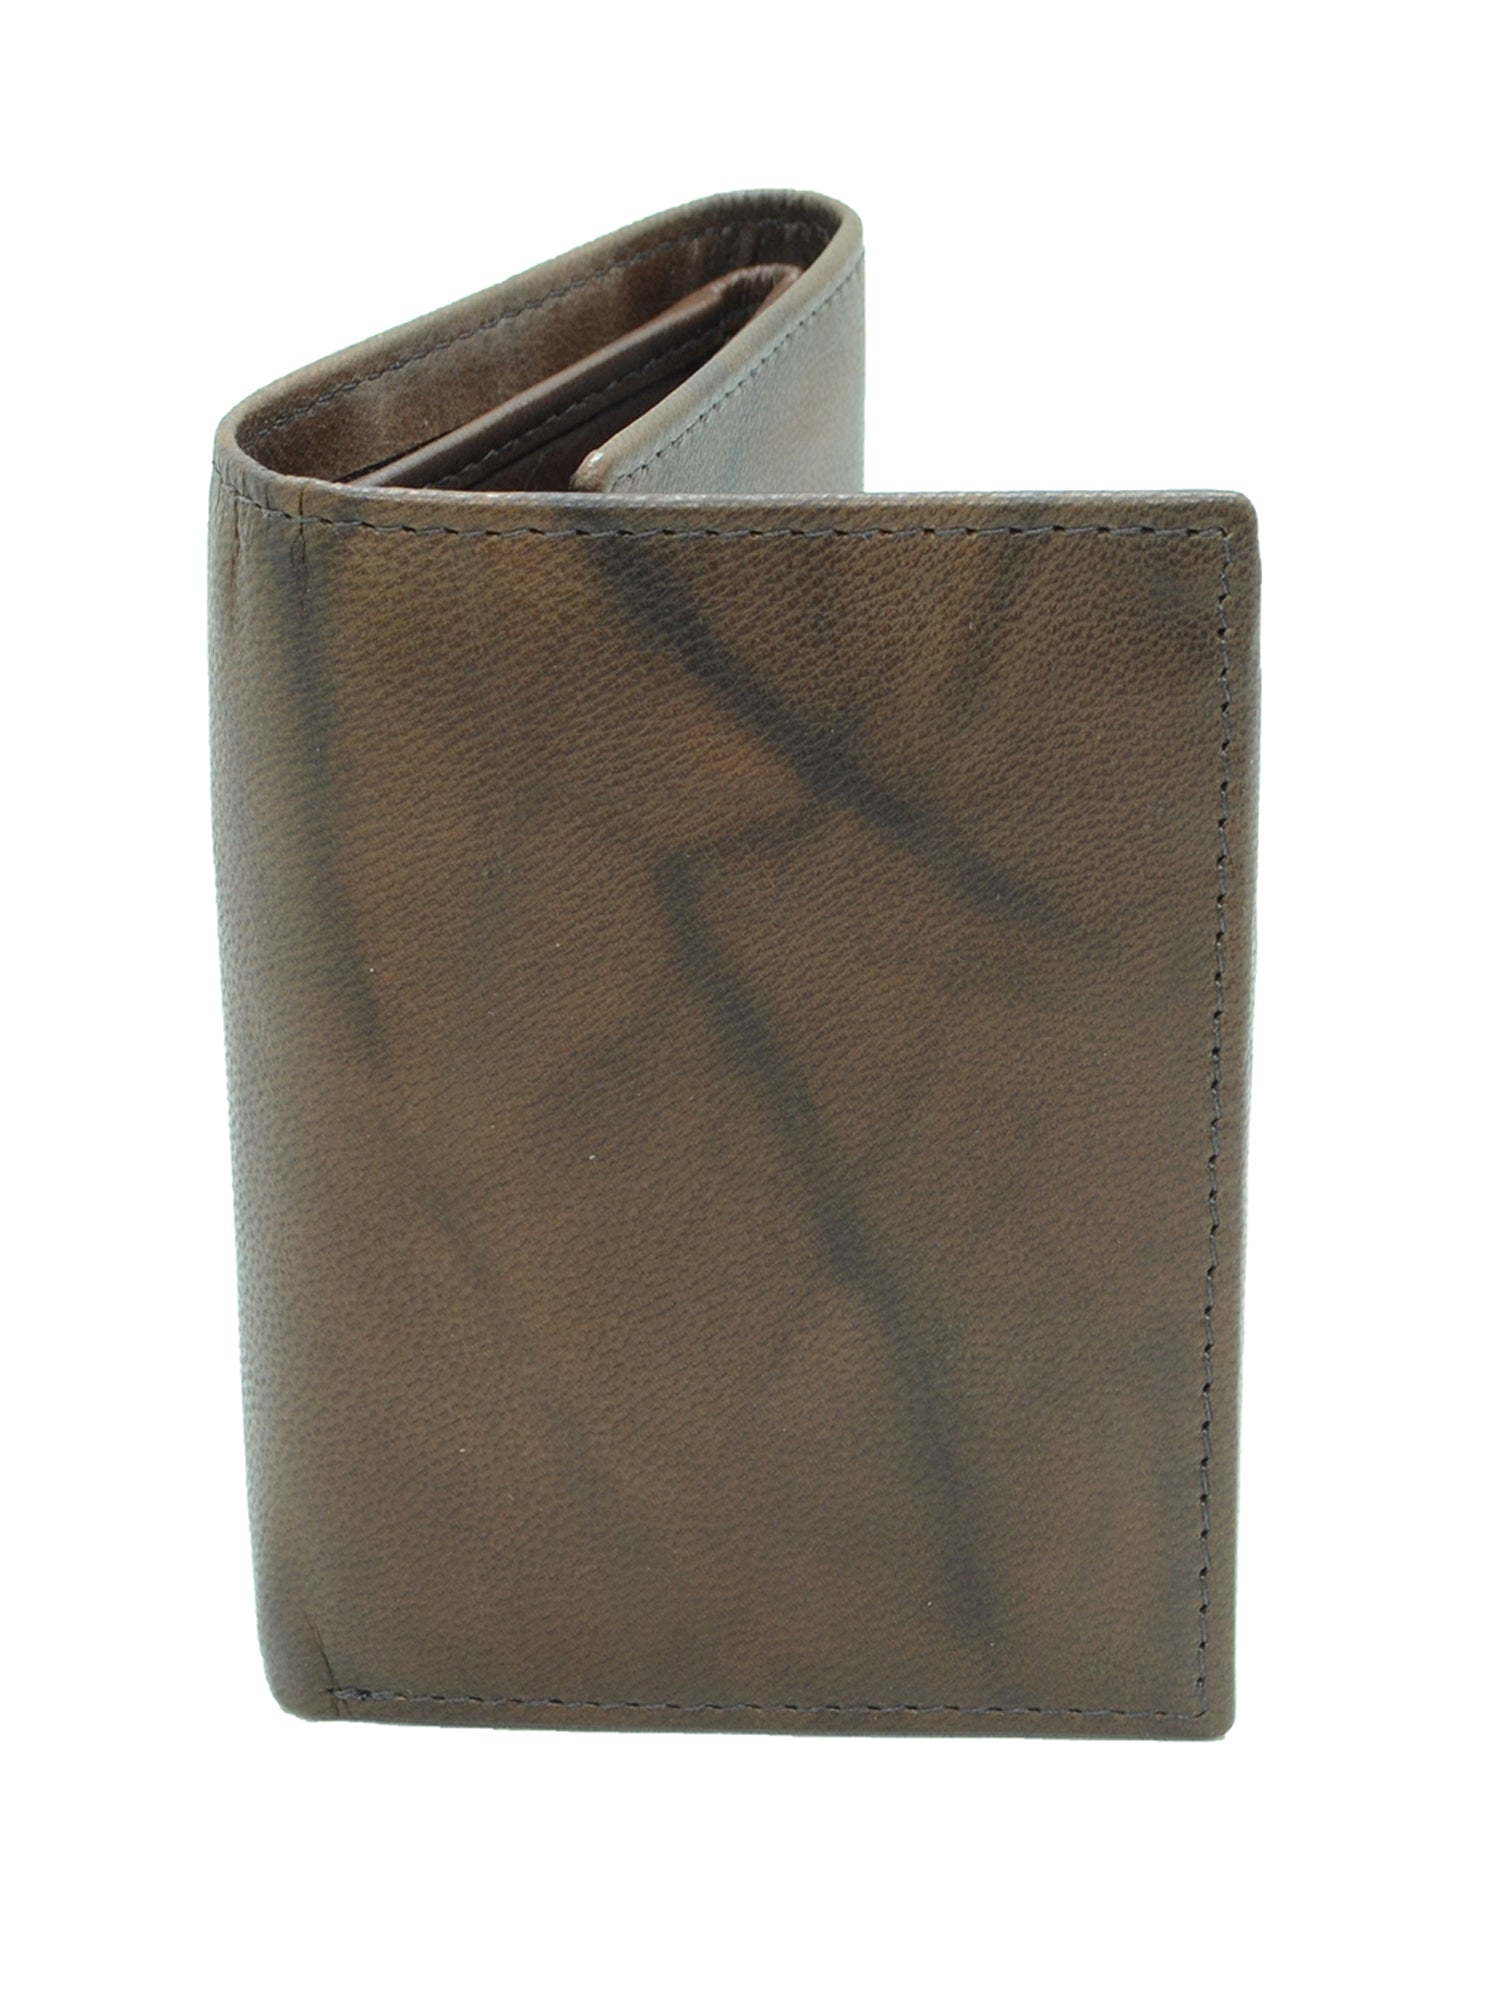 Men's Genuine Leather RFID Blocking Extra Capacity Trifold Wallet